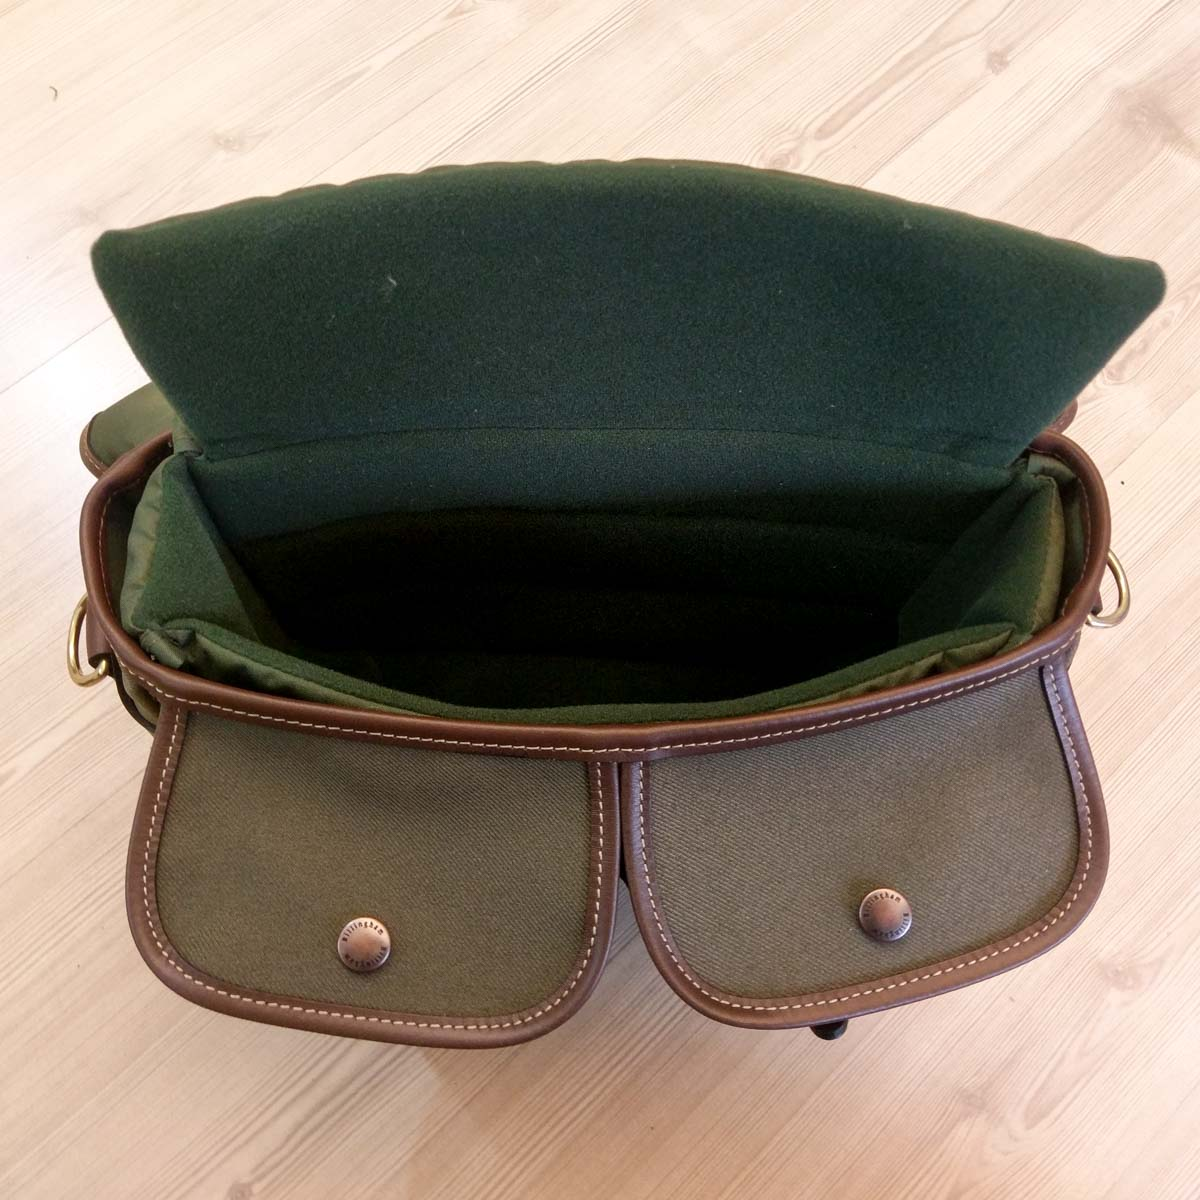 Billingham Hadley Small Pro - With insert